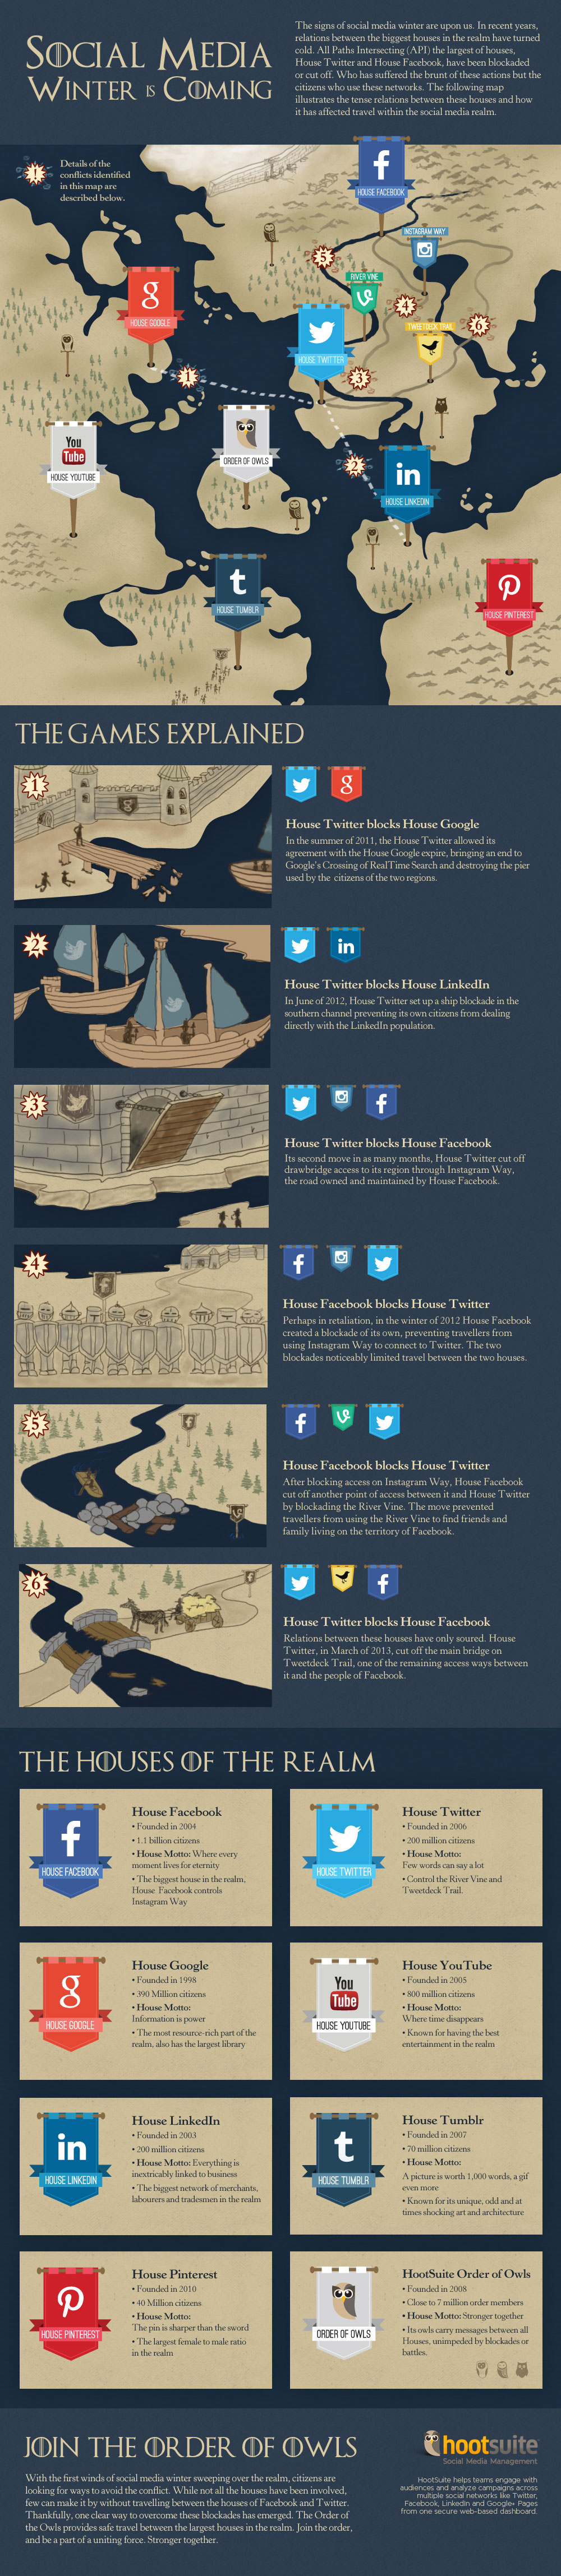 Social Media Landscape - Game of Thrones Style